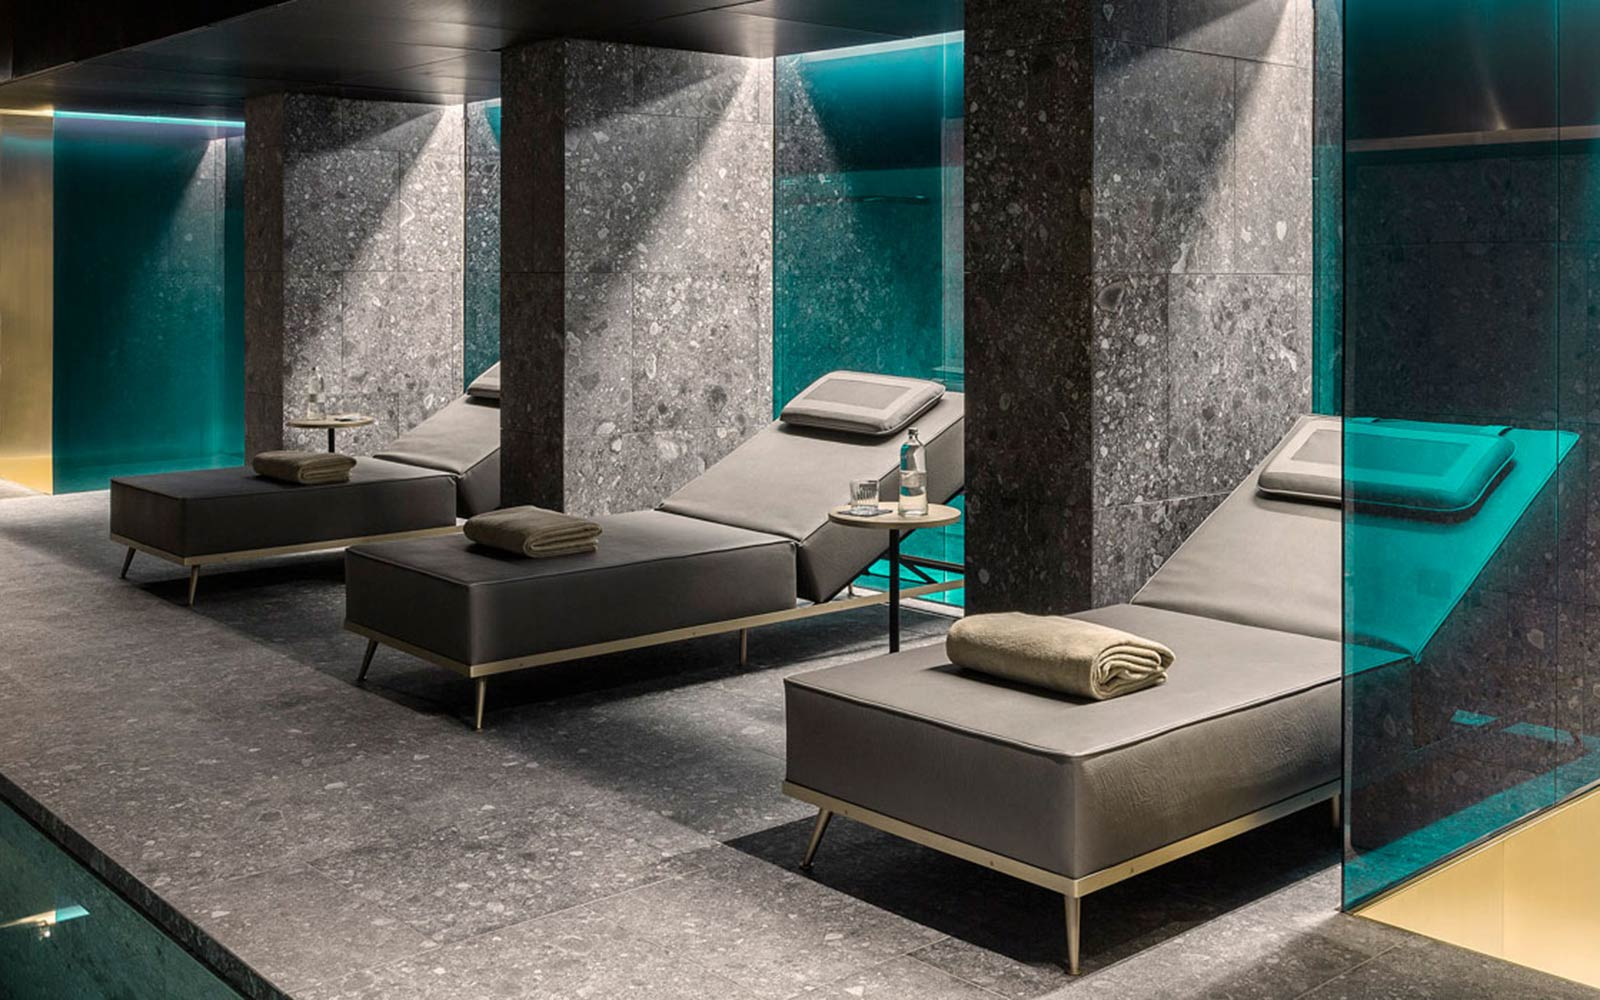 ZONA RELAX<br>CERESIO 7 GYM & SPA - MILANO